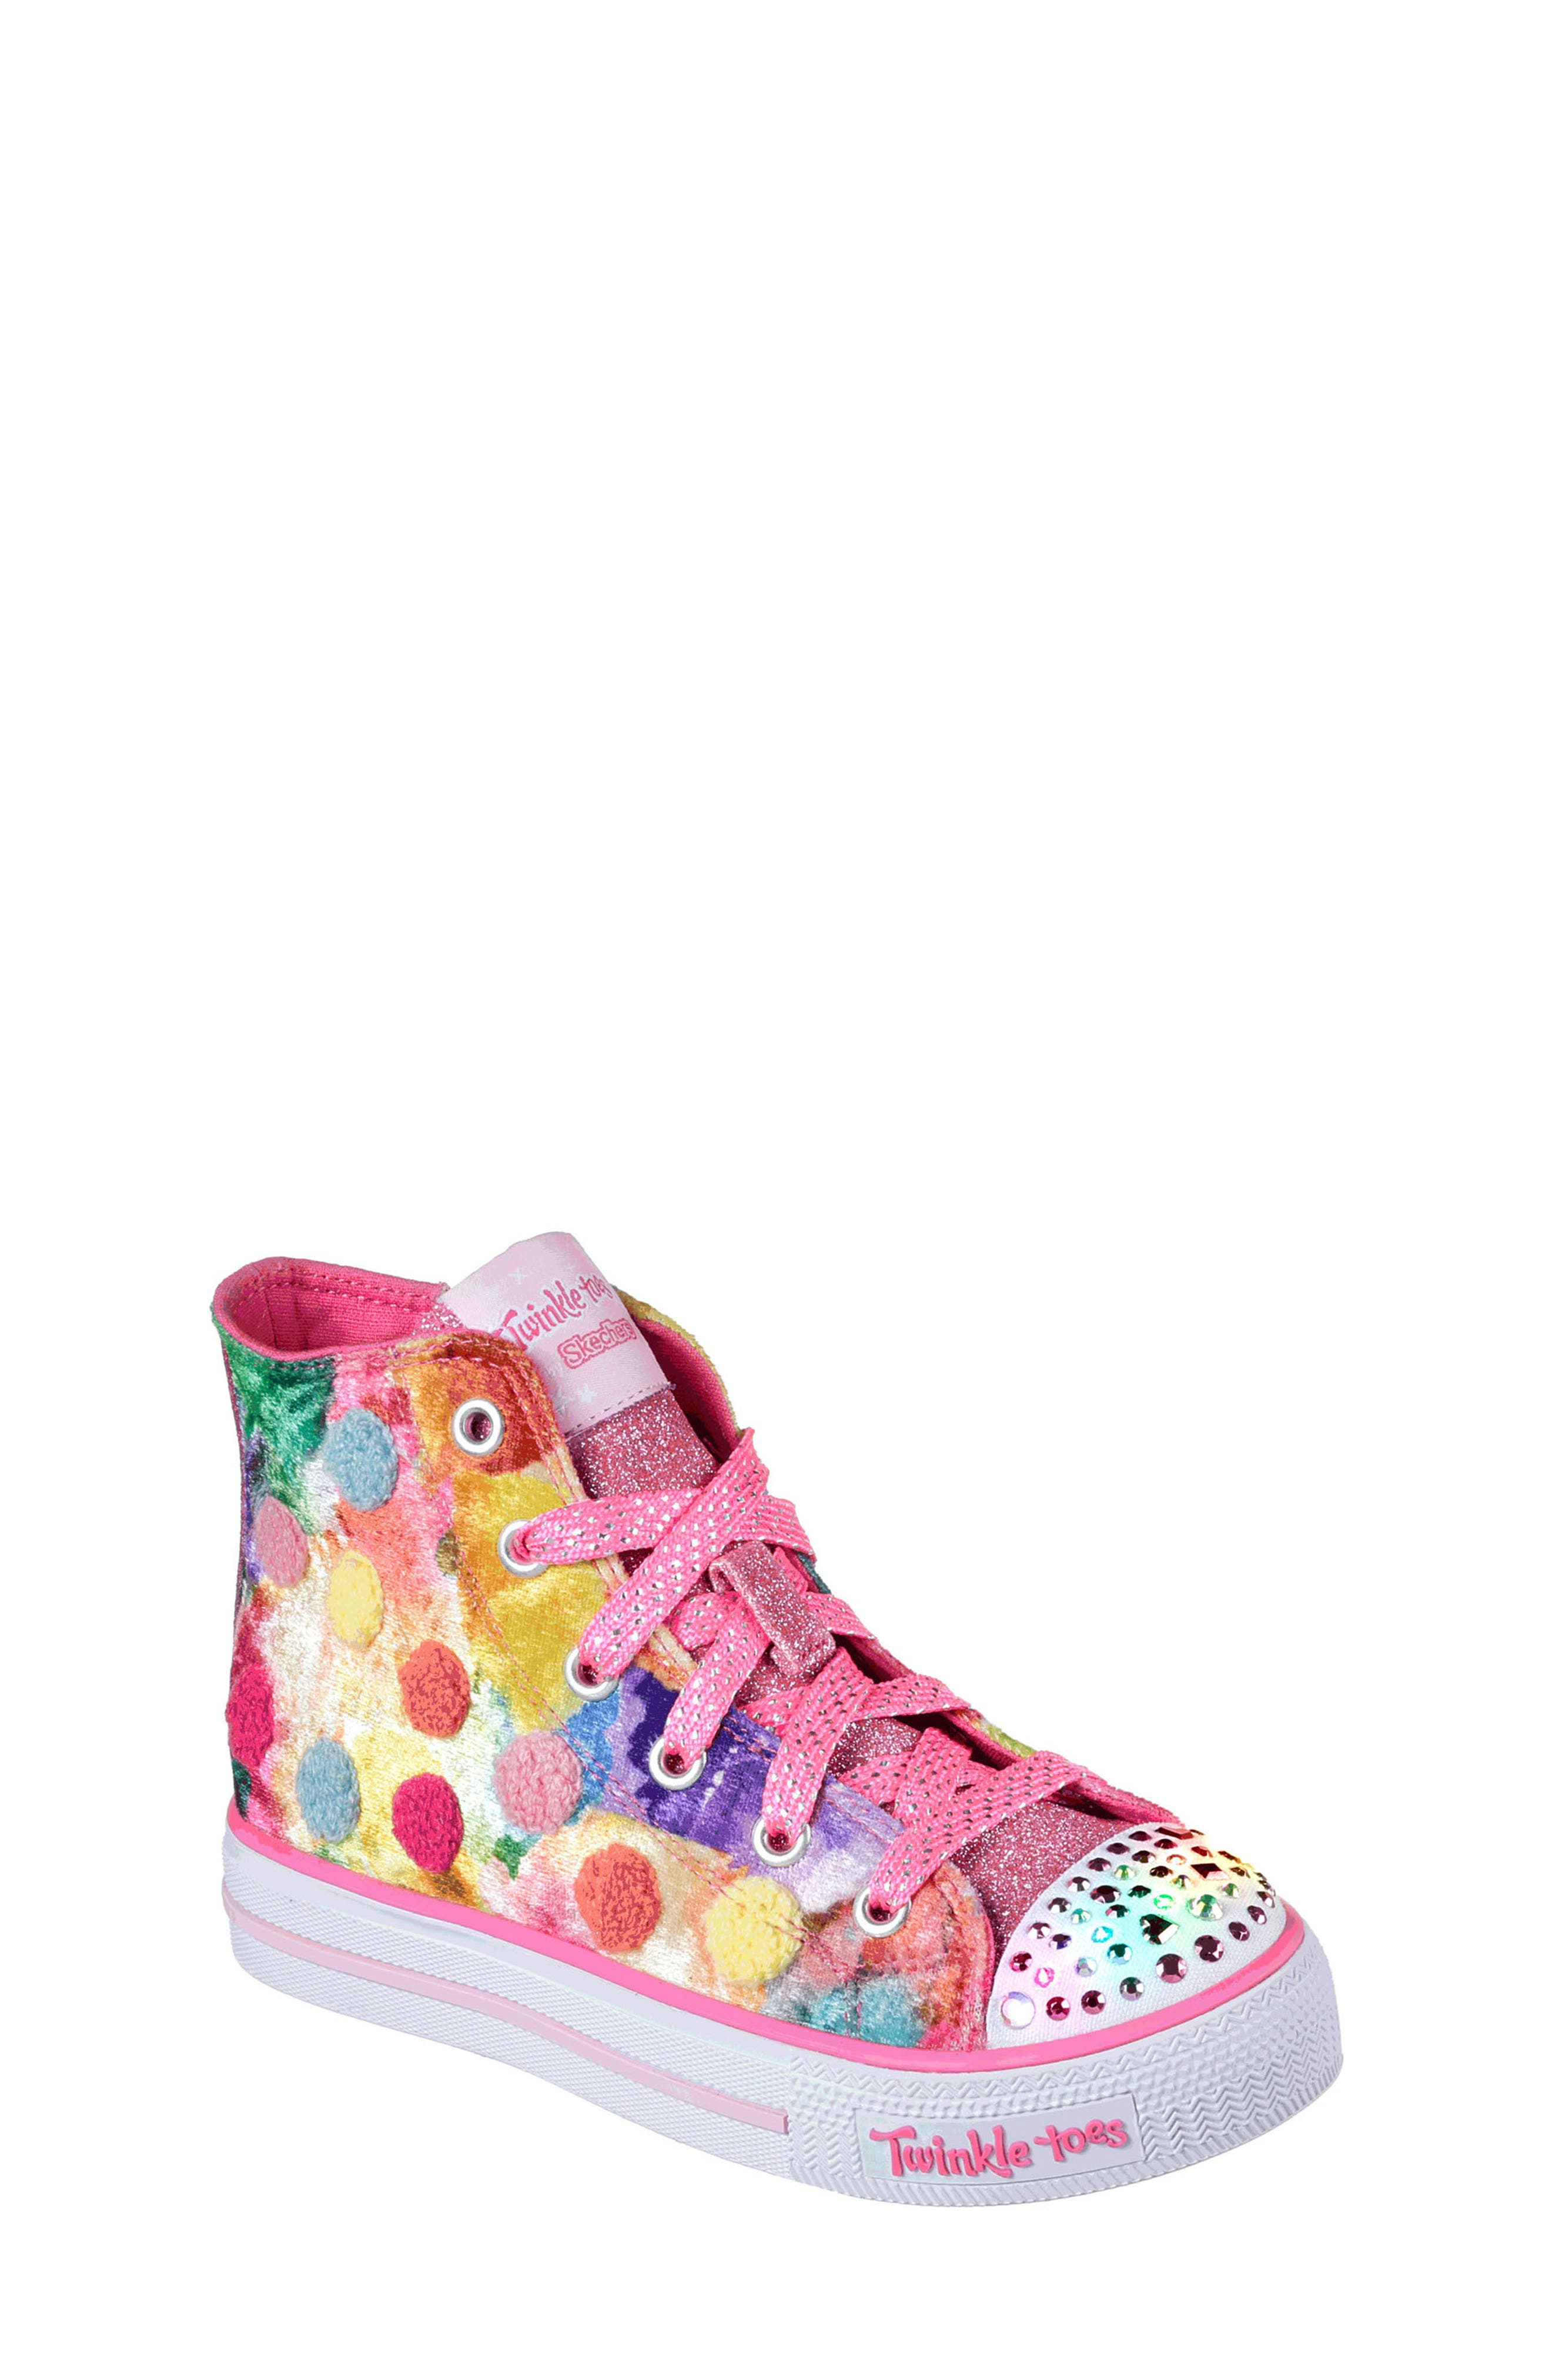 Twinkle Toes Shuffles Light-Up High Top Sneaker,                         Main,                         color, Hot Pink/ Multi